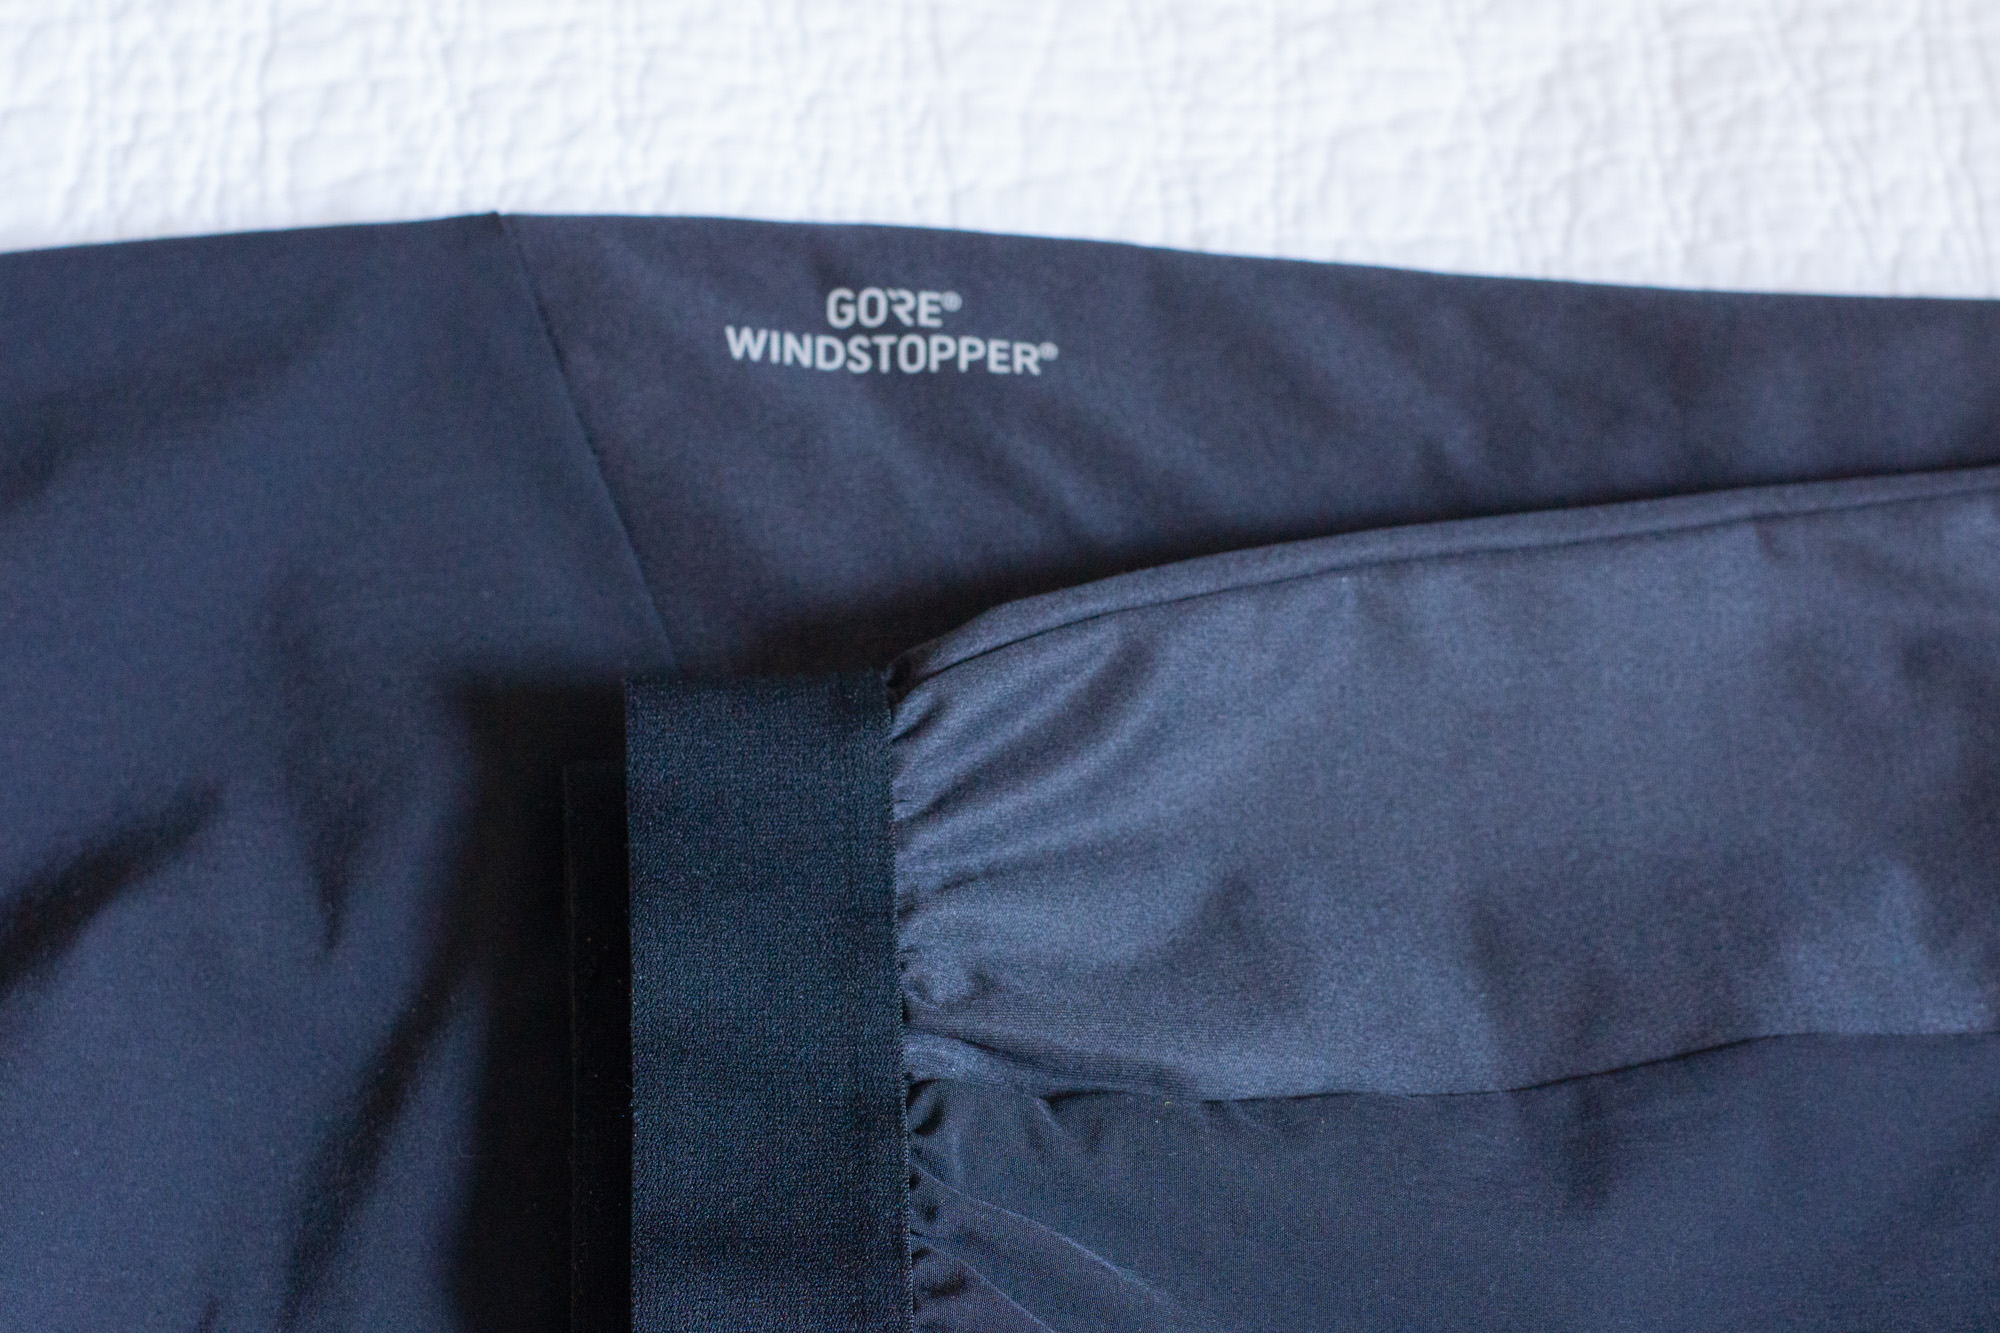 Under Armour Unstoppable Gore Windstopper Pant